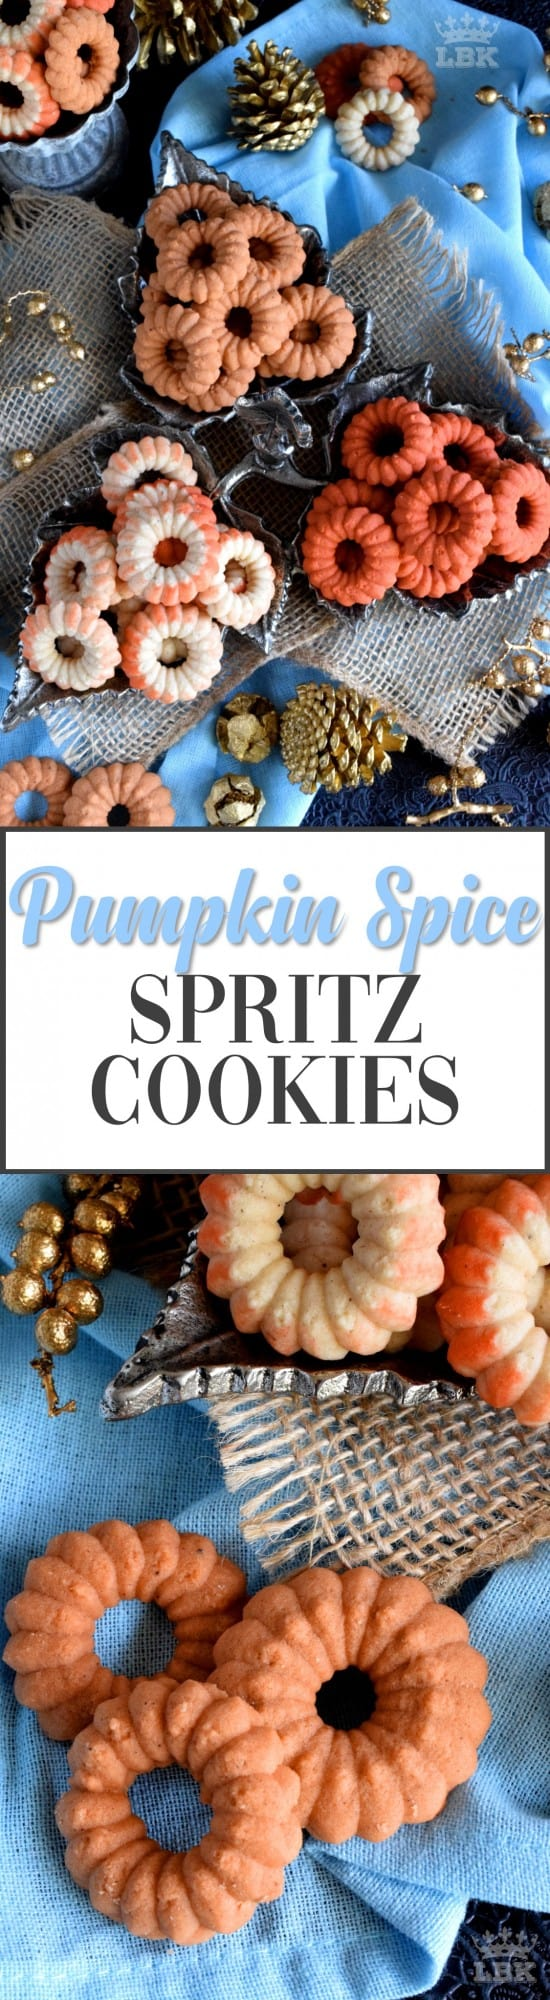 Pumpkin Spice Spritz Cookies - Spritz cookies are a classic and will bring a smile to everyone's face - especially if that cookie is flavoured with pumpkin spice and looks this pretty!#pumpkinspice #pumpkin #cookies #spritz #press #orange #thanksgiving